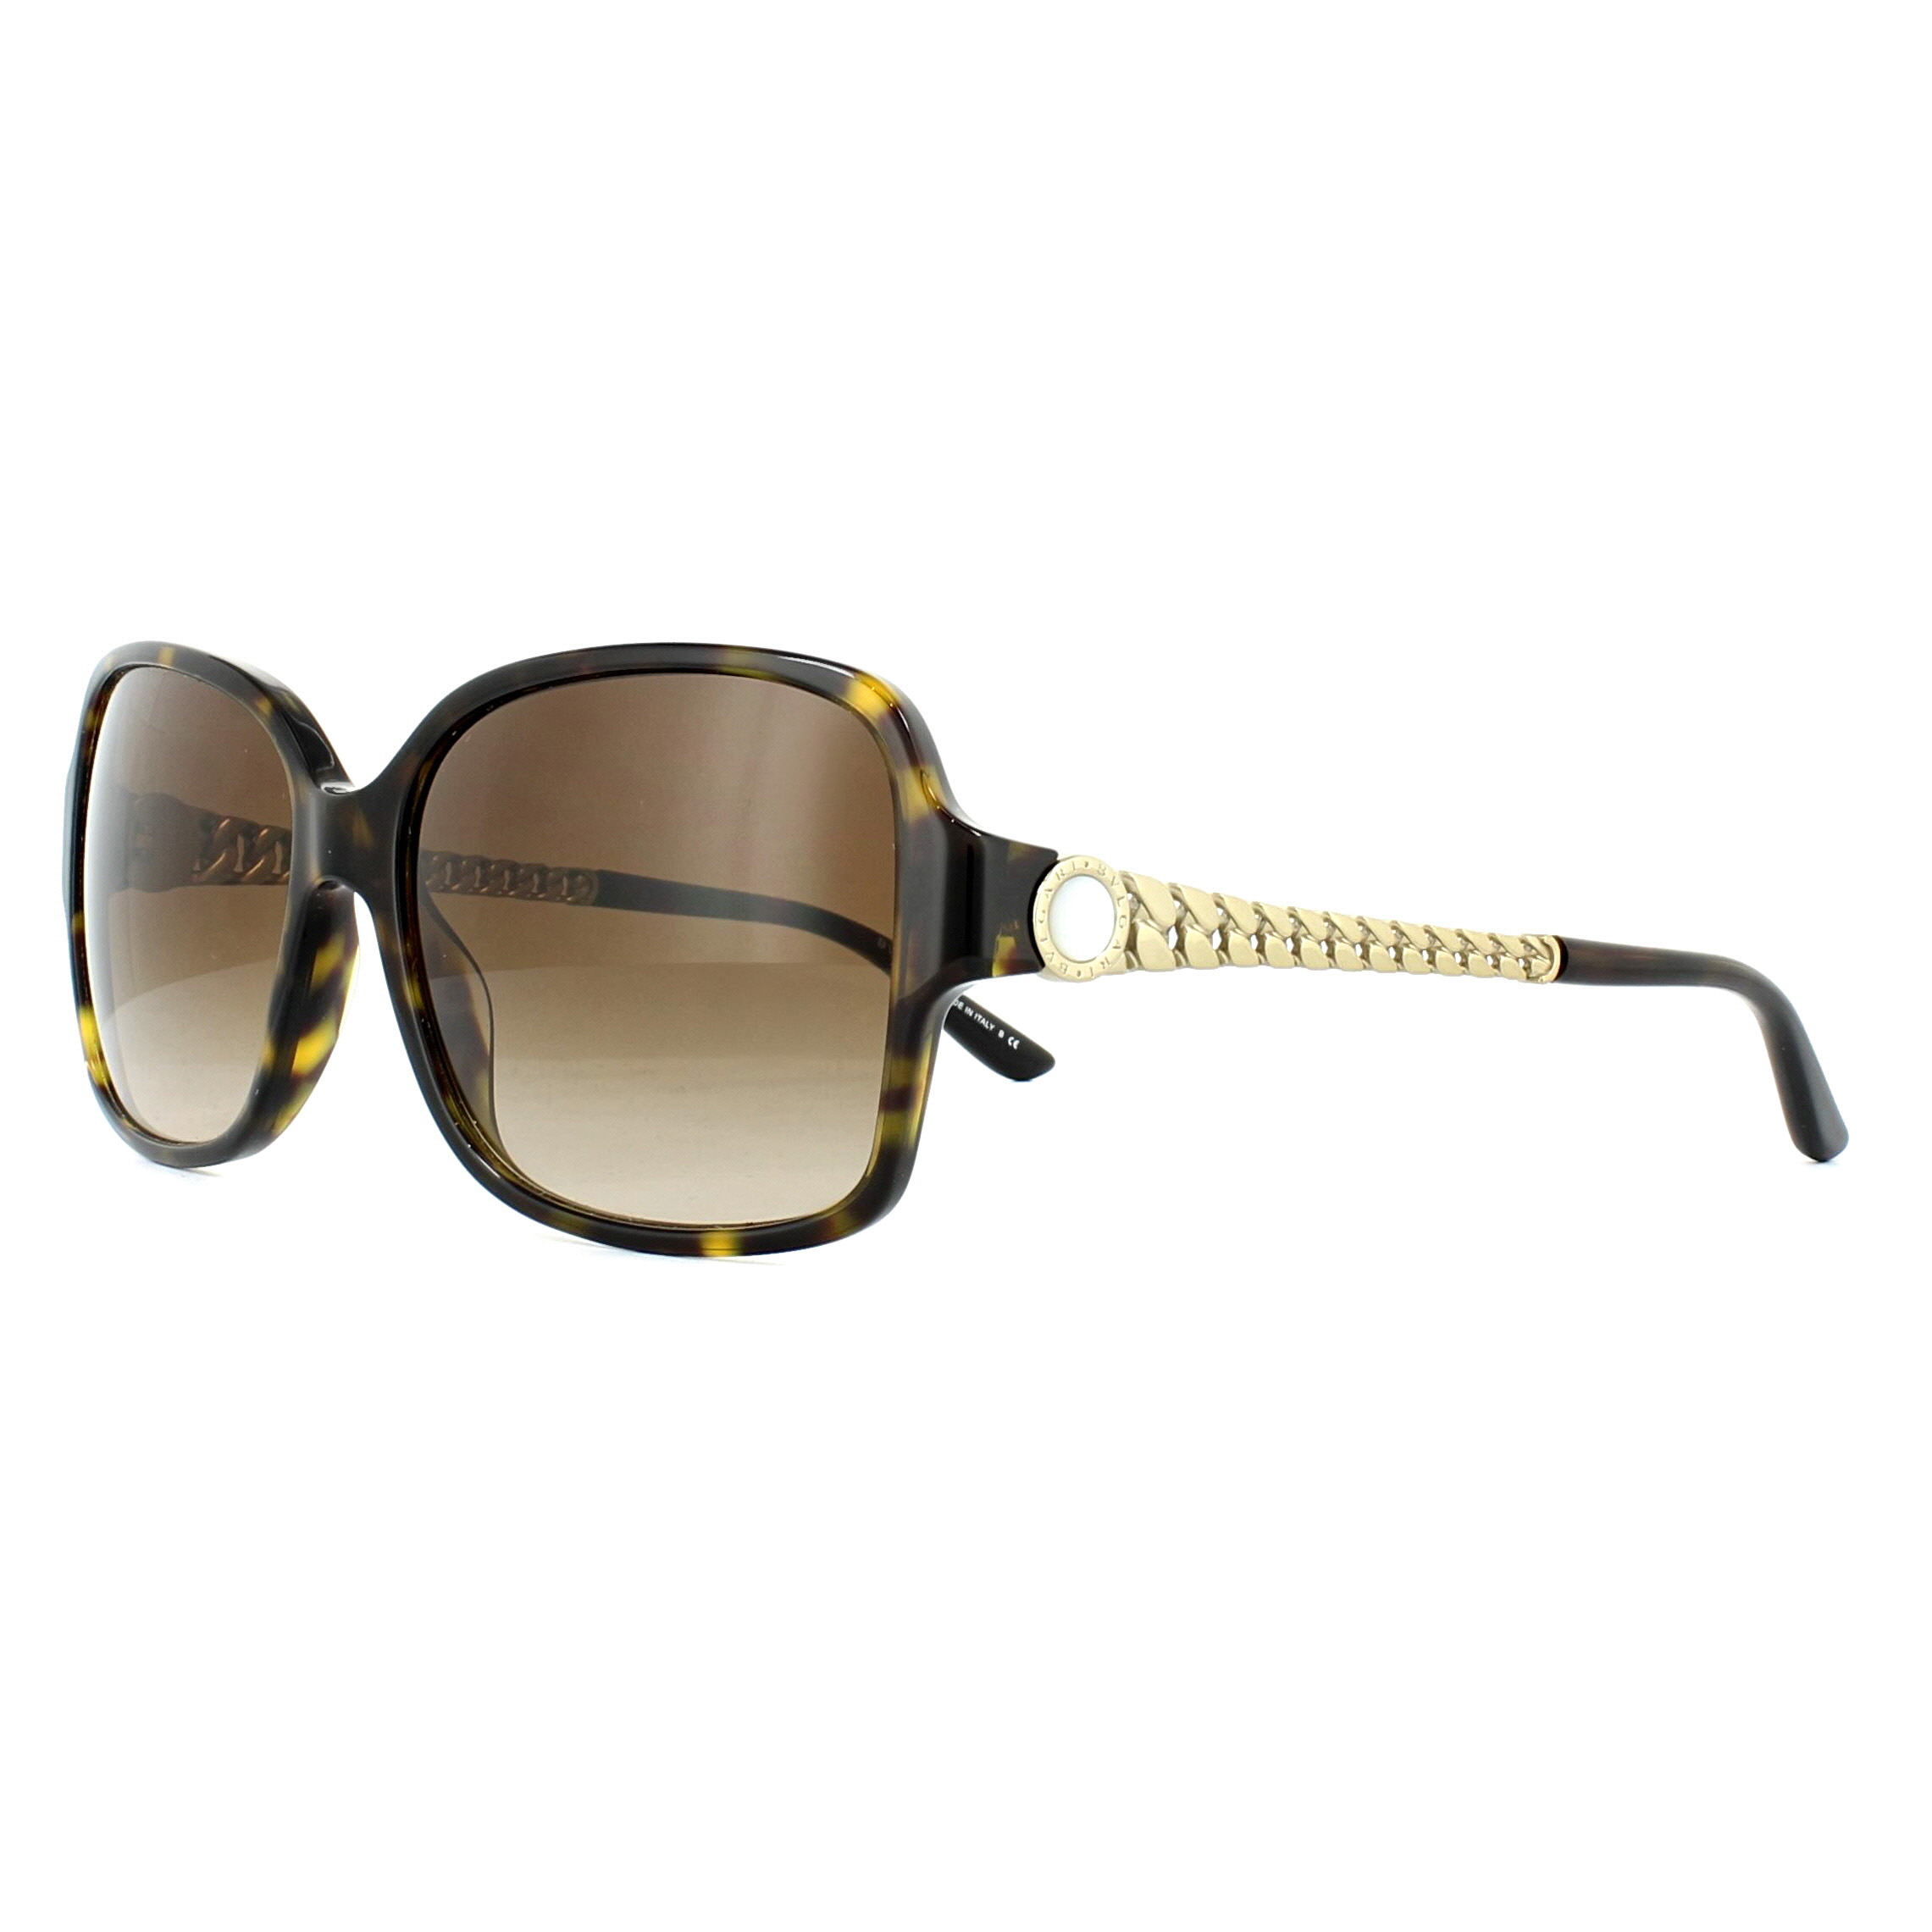 2614bb2ecc0 Sentinel Bvlgari Sunglasses 8125H 504 13 Havana Gold Brown Gradient